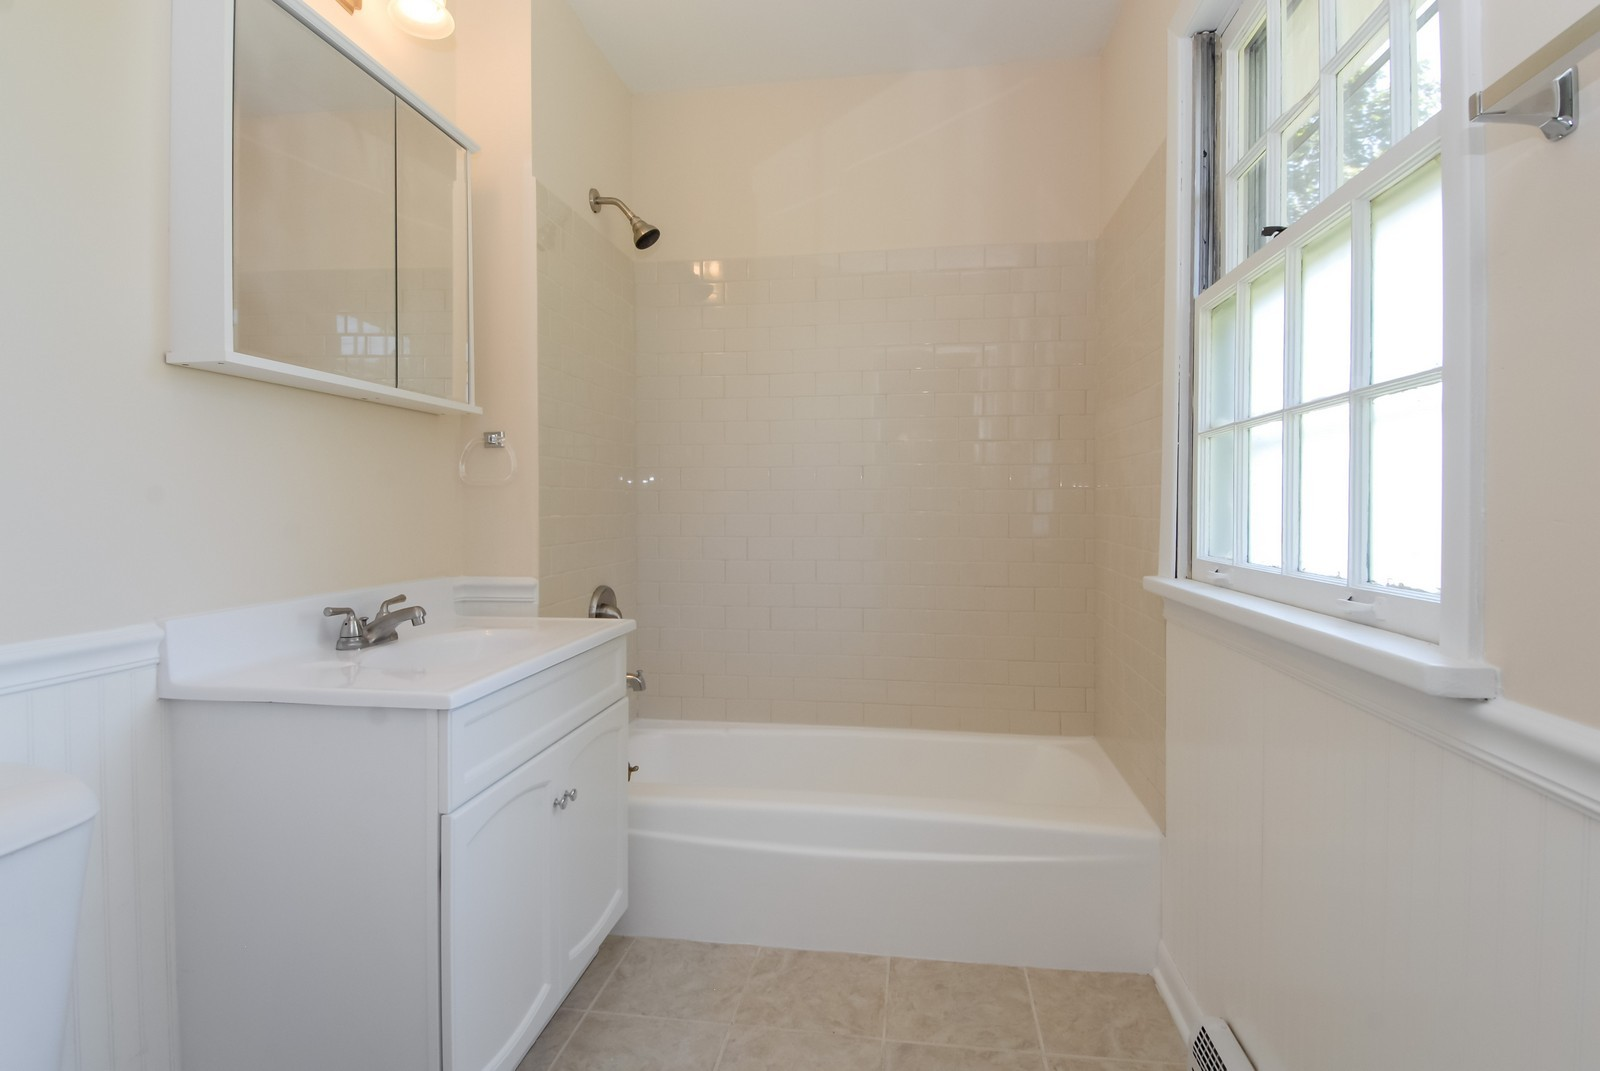 Real Estate Photography - 5N456 Old LaFox Rd, St Charles, IL, 60175 - Master Bathroom